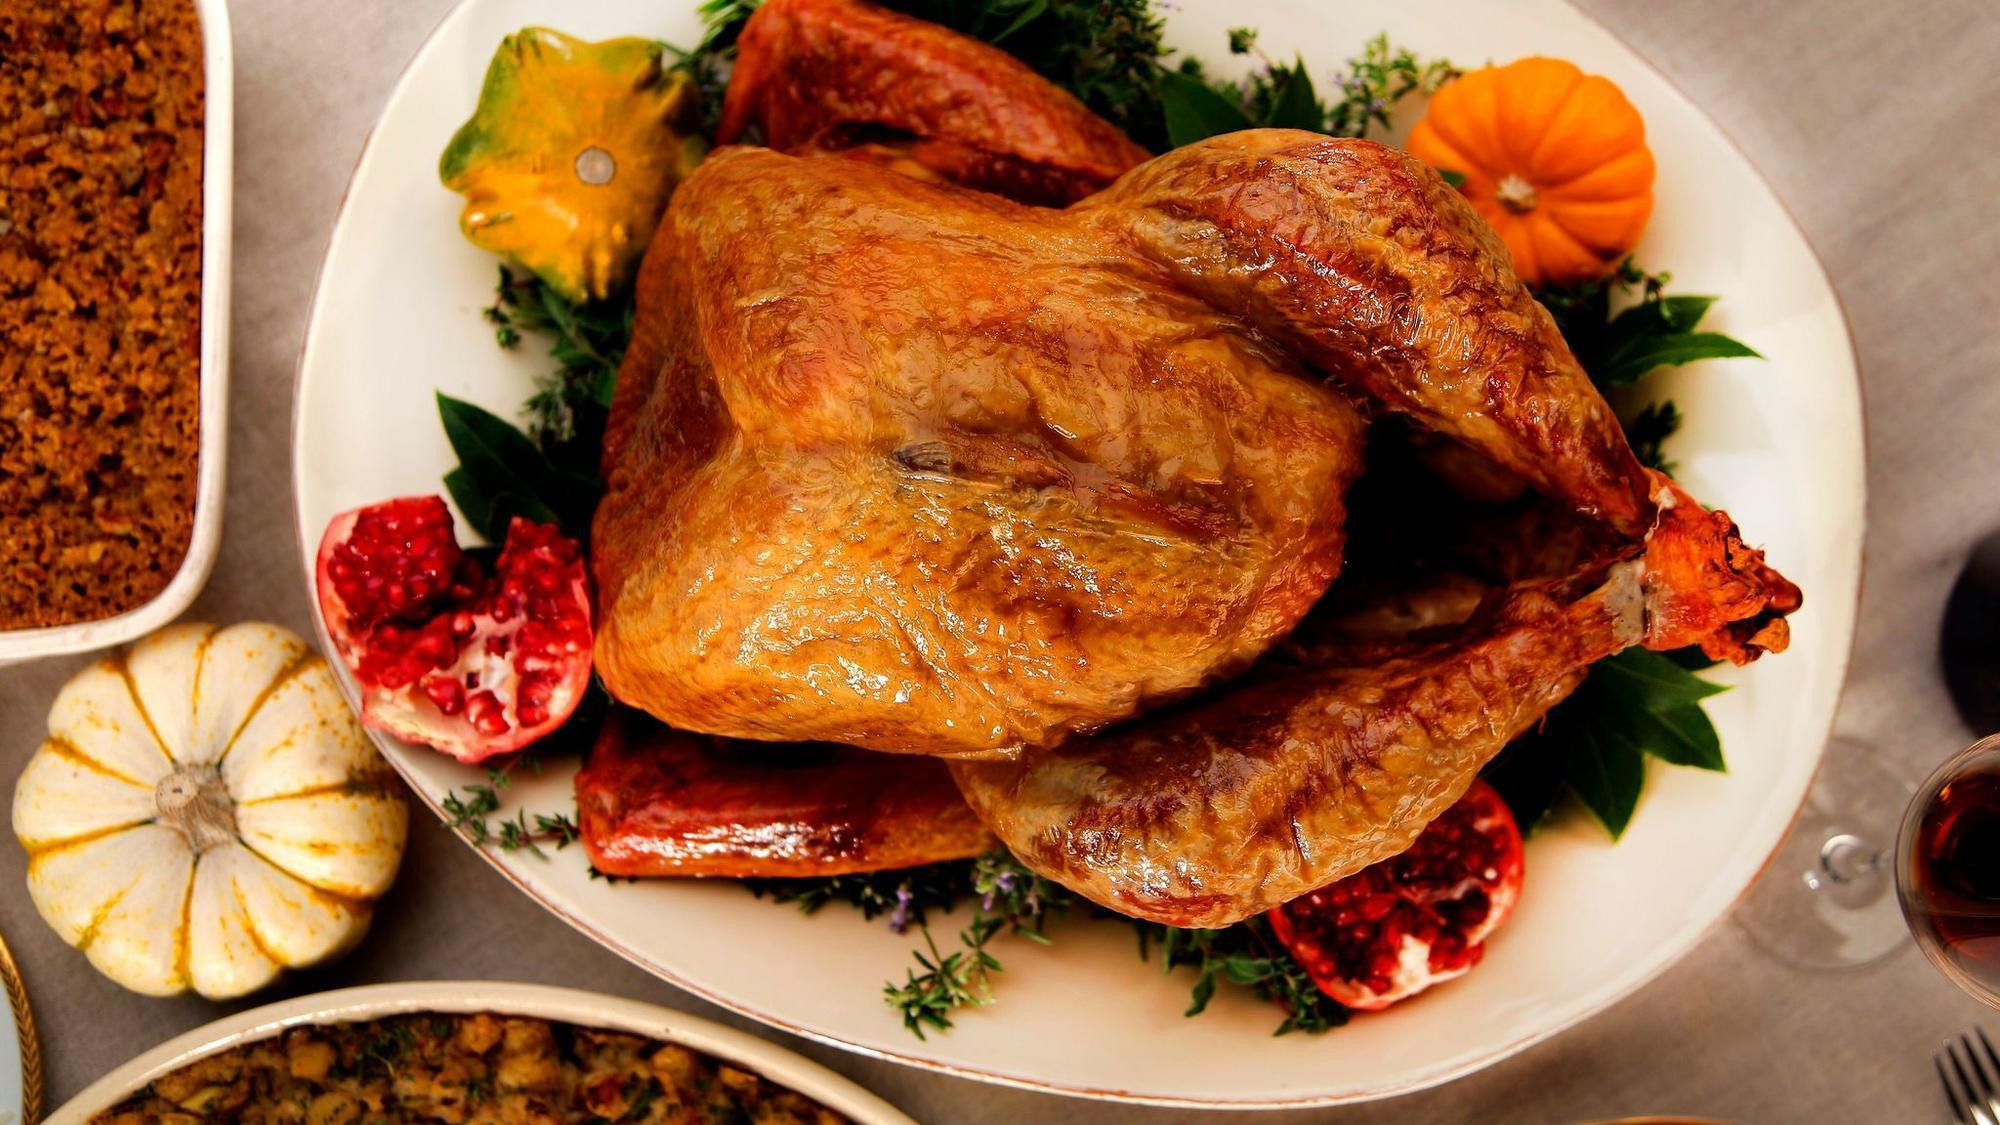 Prepare Thanksgiving Turkey  Turkey 101 How to cook a Thanksgiving turkey LA Times